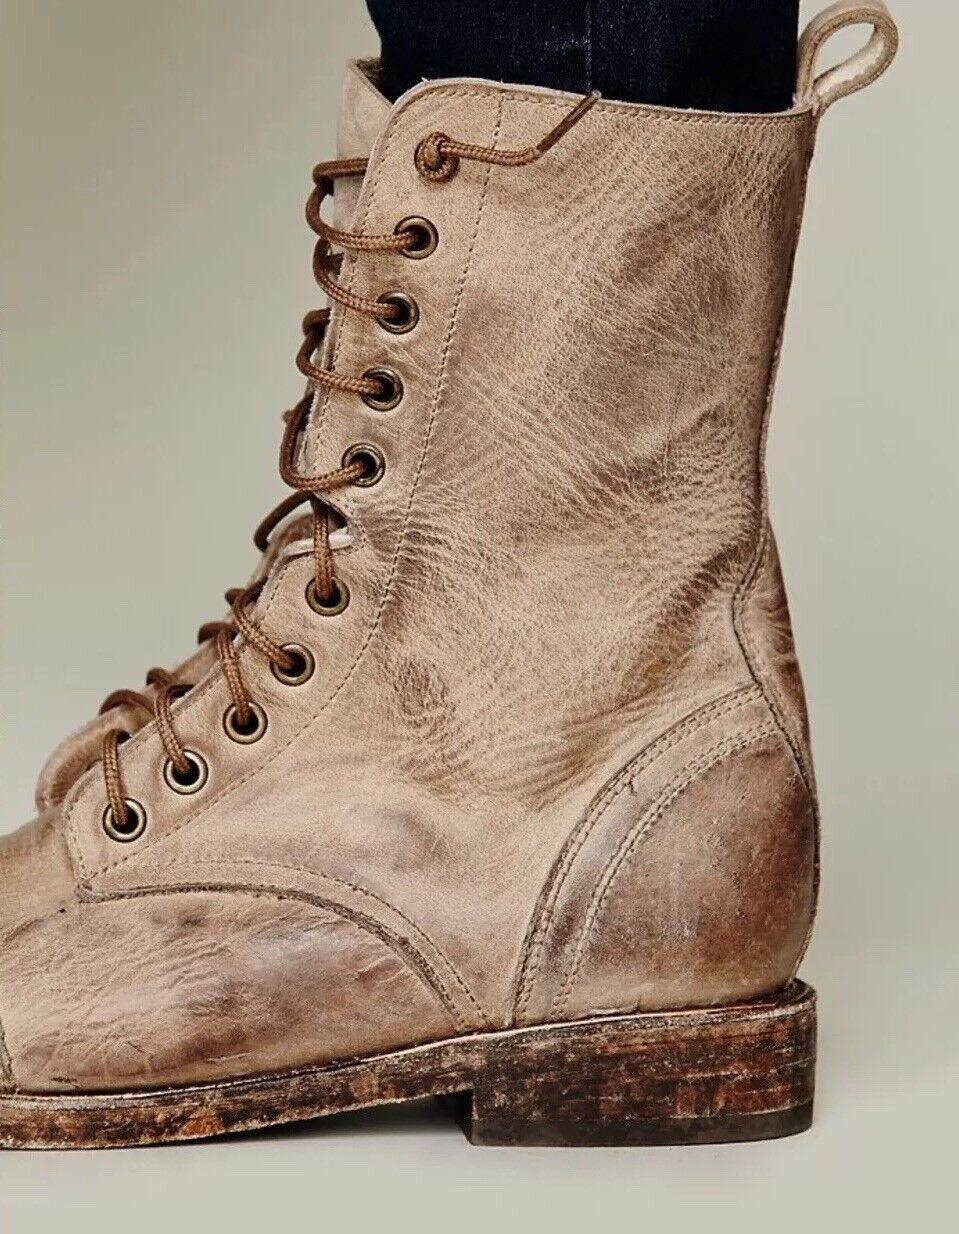 Freebird by Steven chase combat combat combat boots sz 9 Brand New Natural 1d8781